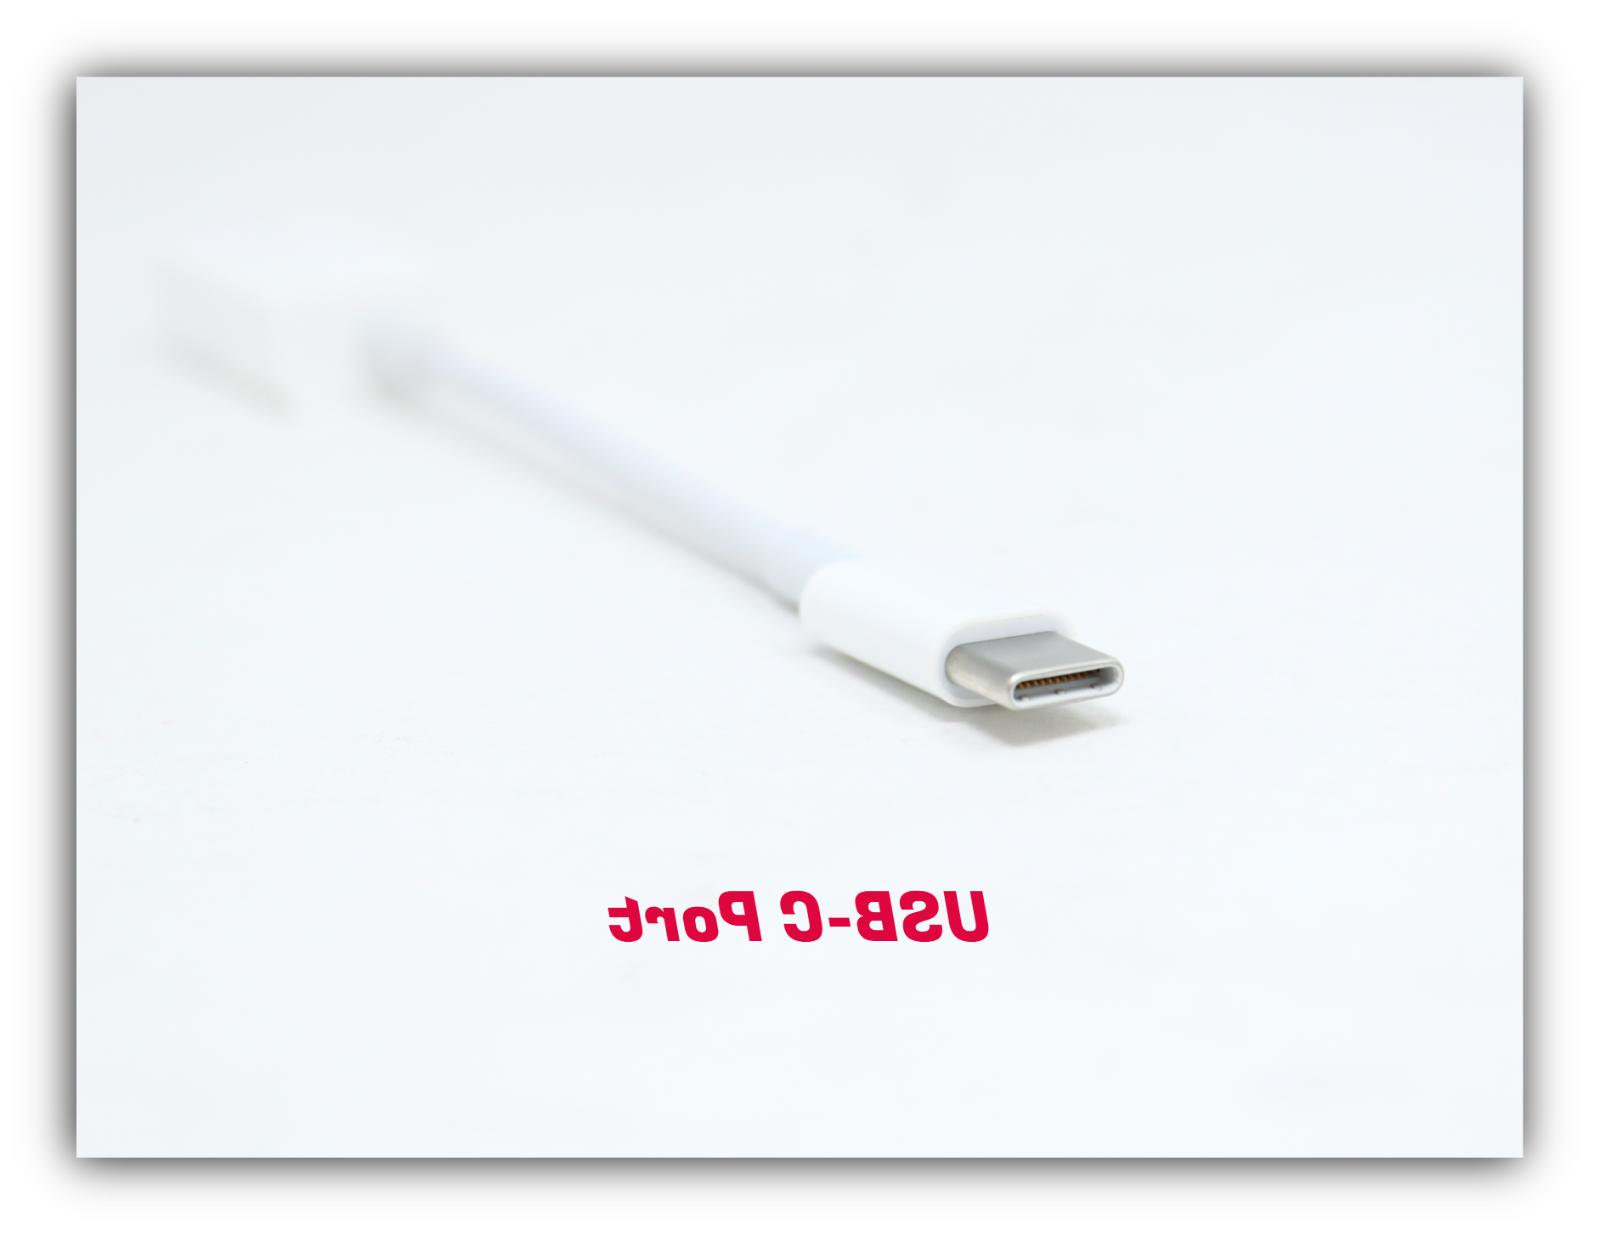 Genuine USB-C to USB # A1632